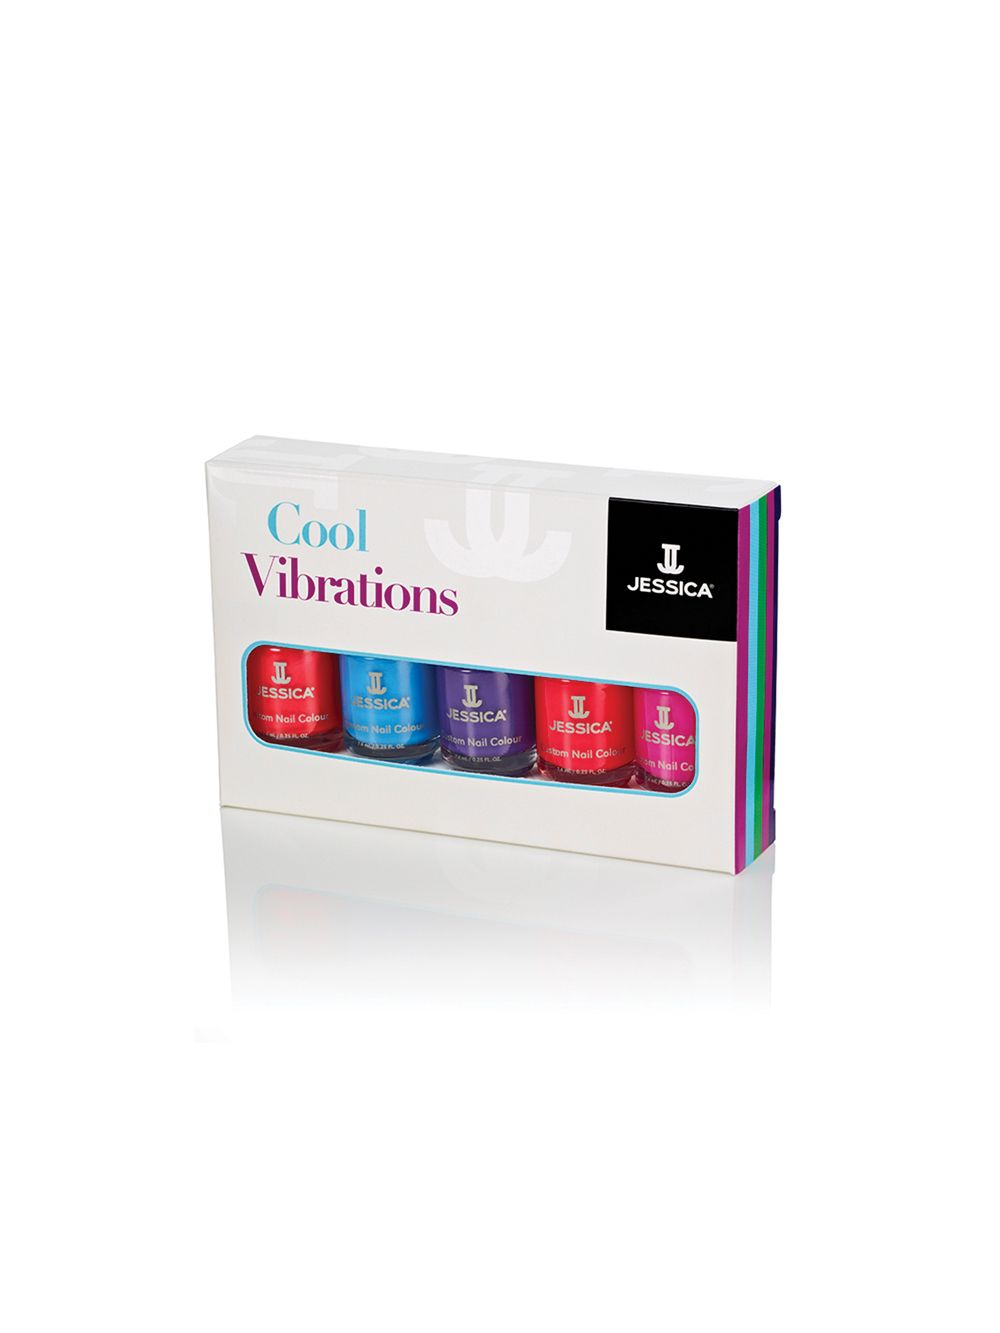 Jessica Gift Kits Cool Vibrations